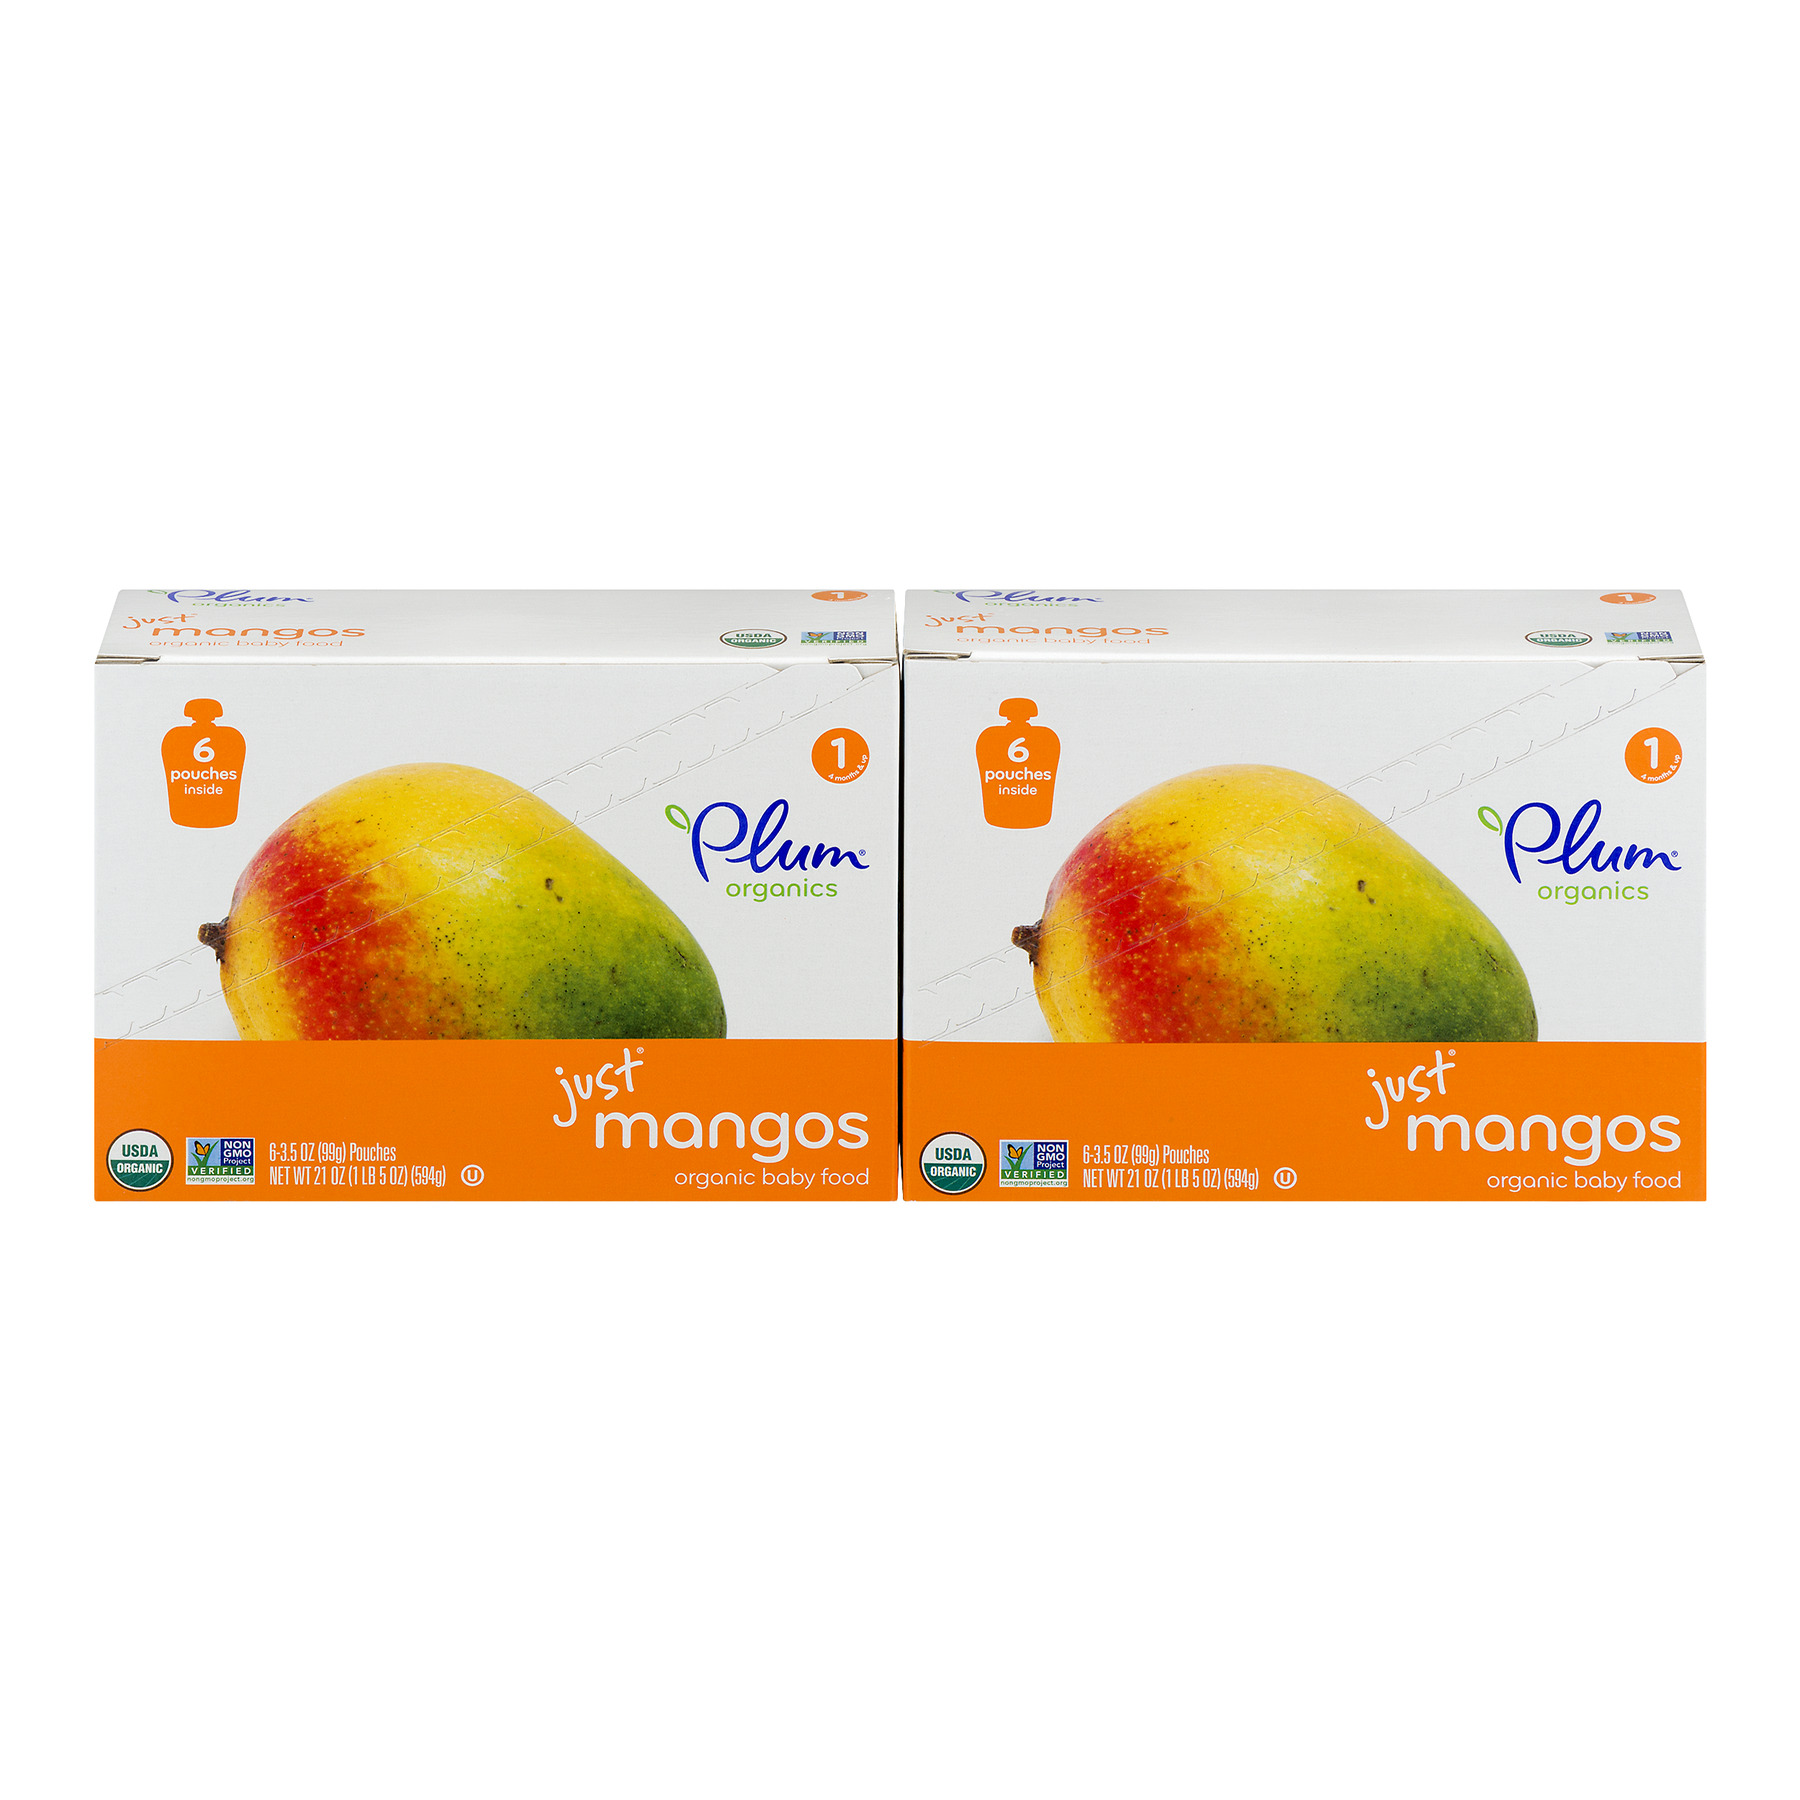 Plum Organics Just Mangos 4m+ - 12 CT12.0 CT